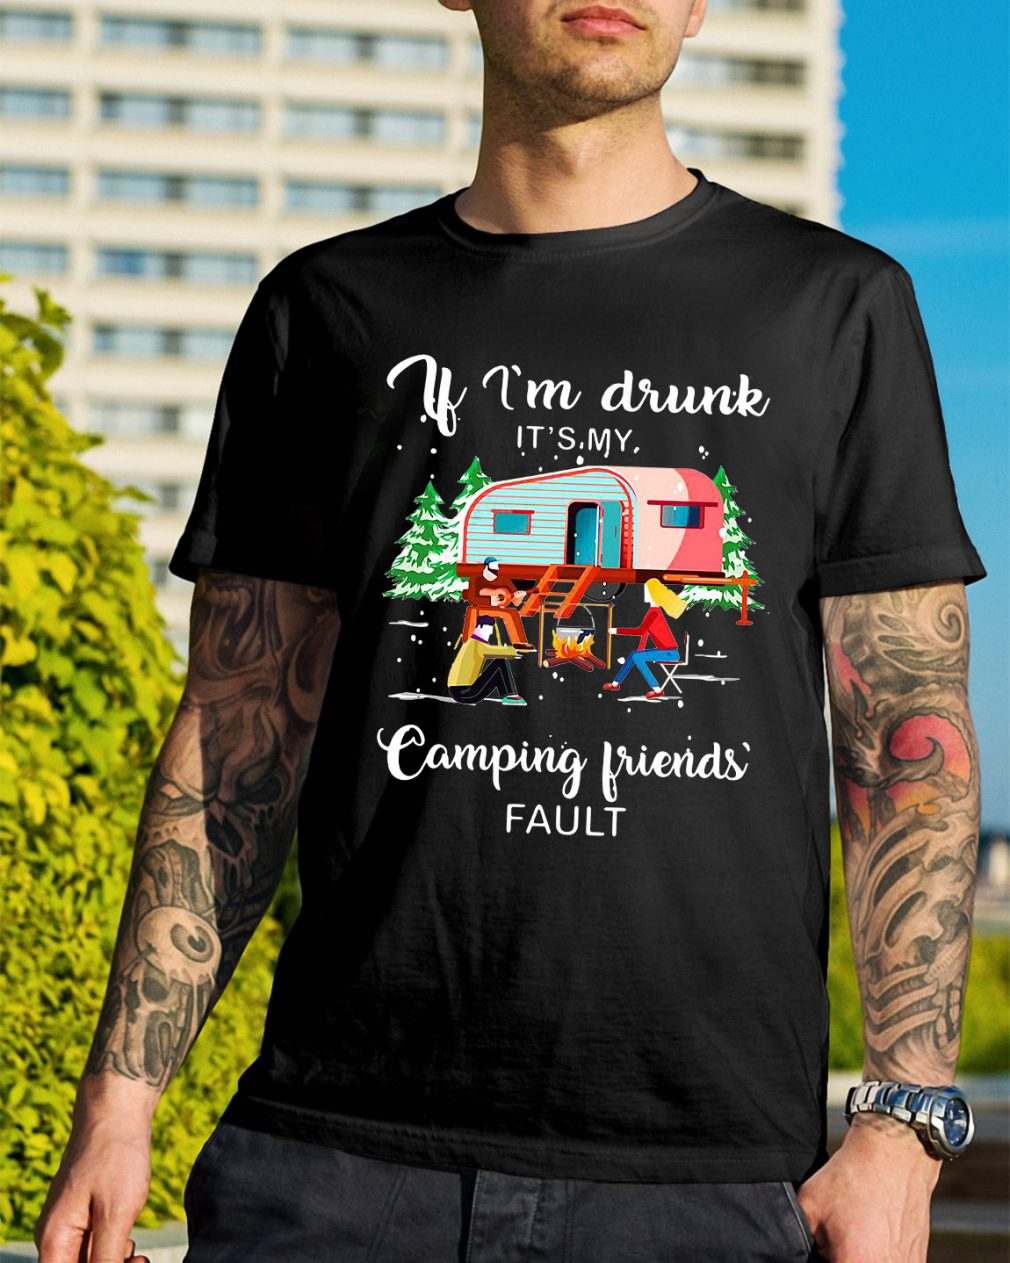 If I'm drunk it's my camping friends fault shirt